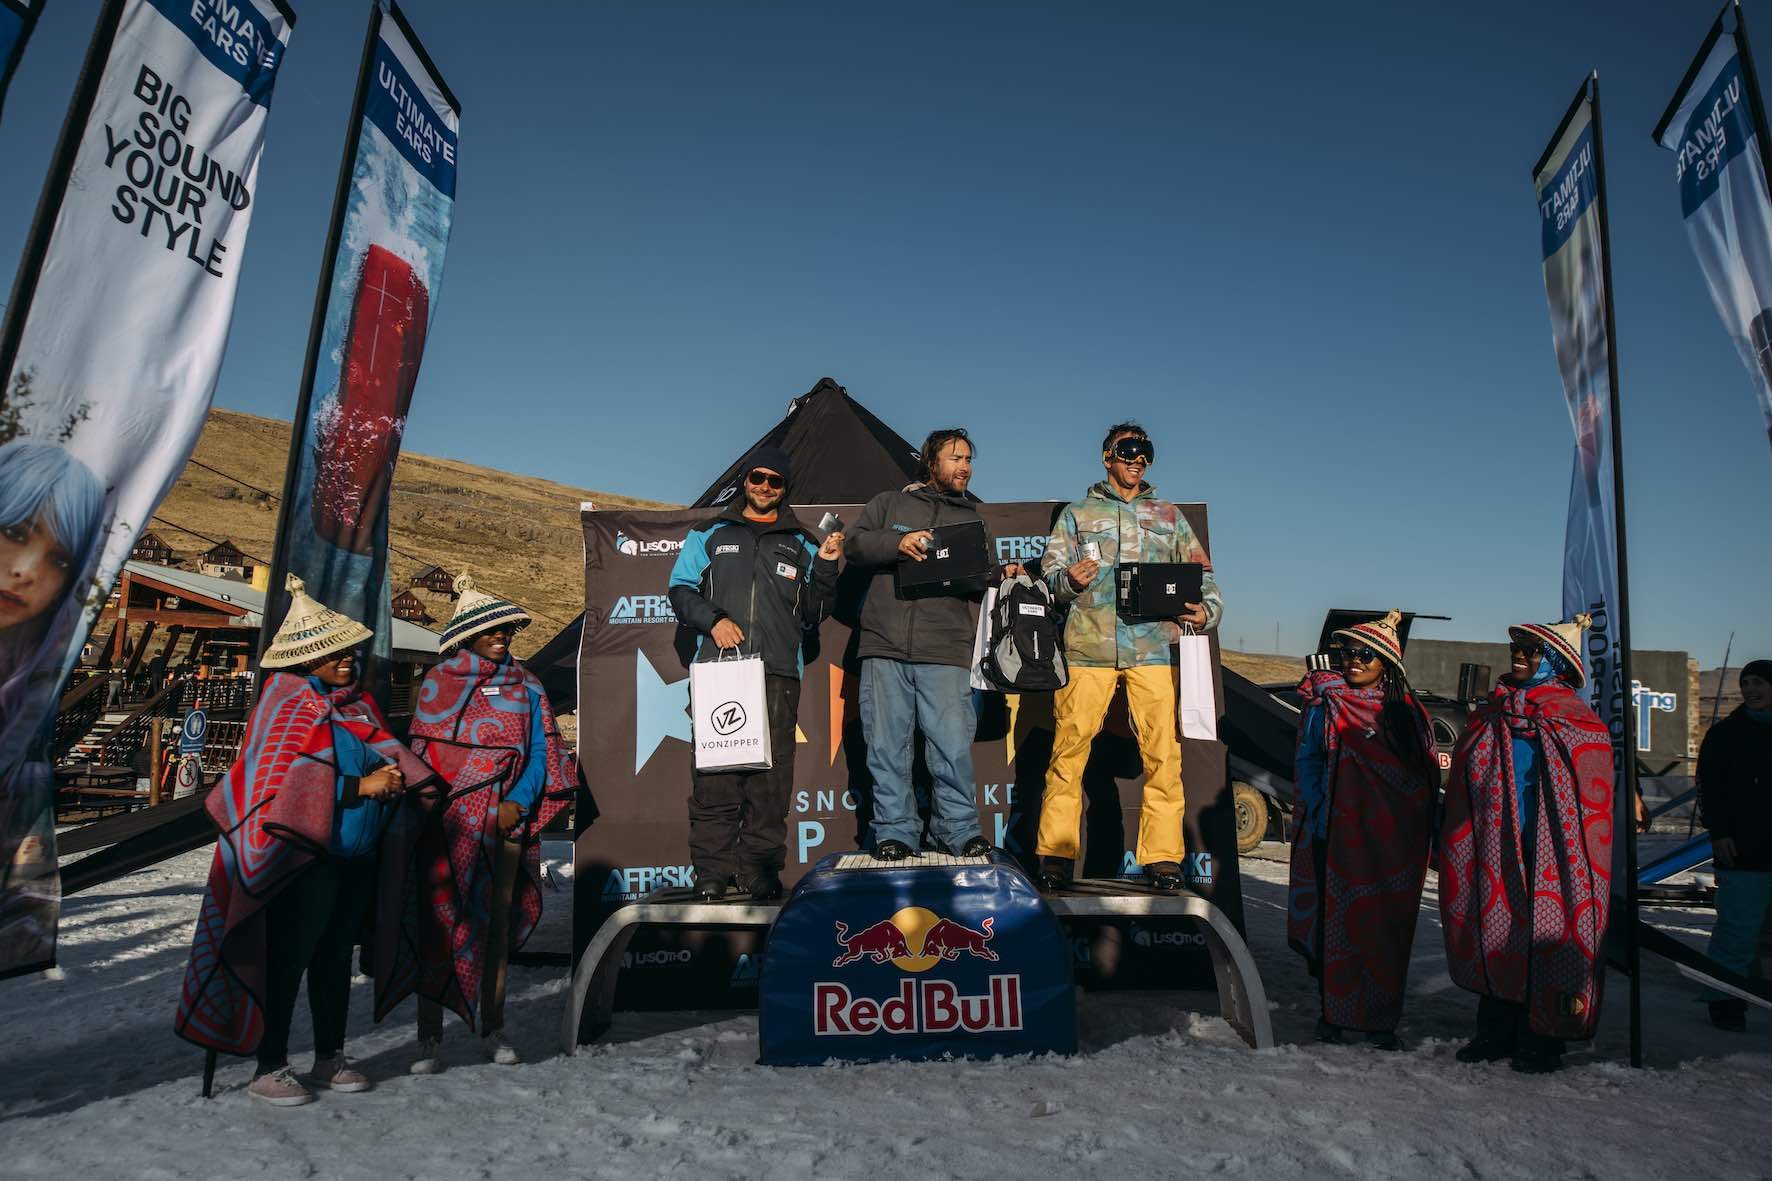 Legends podium at the 2019 Ultimate Ears Winter Whip Snowboard and Ski Festival